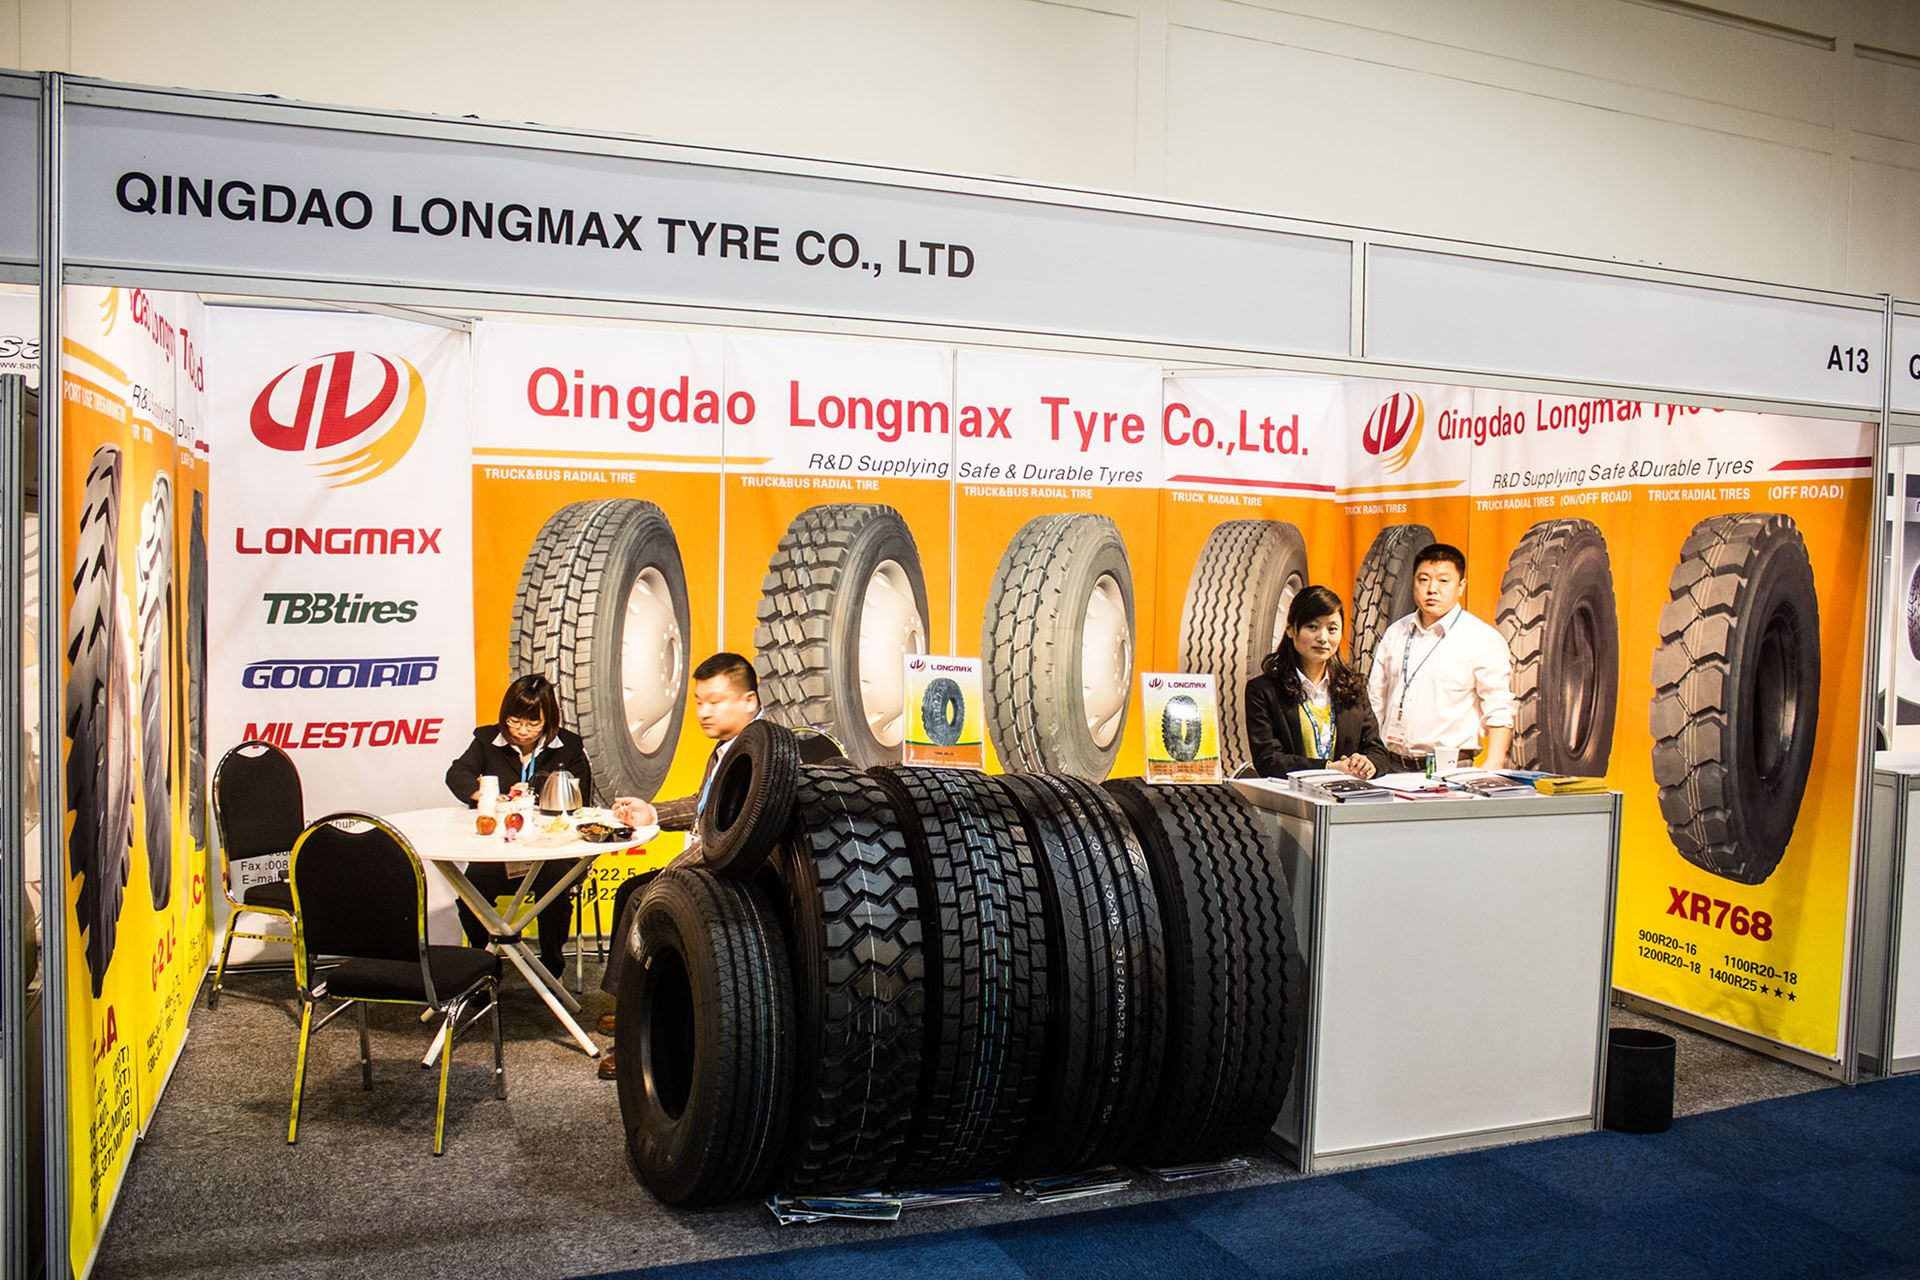 Tyre-Expo-South-Africa-2014-Qingdao-Longmax-Tyre